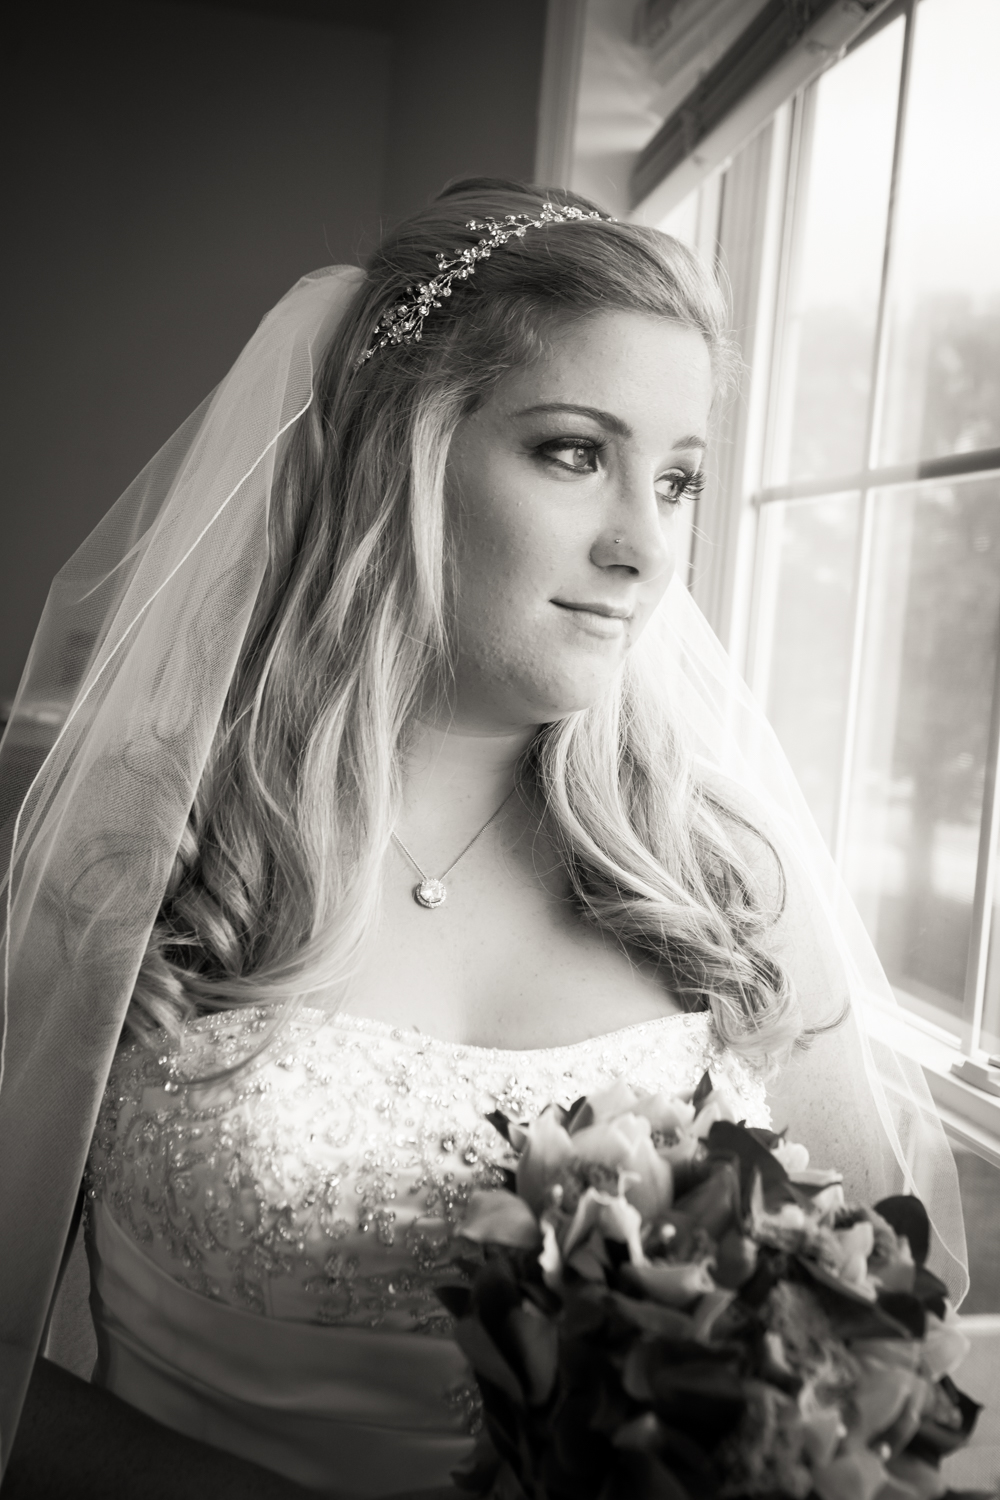 Black and white portrait of bride at window